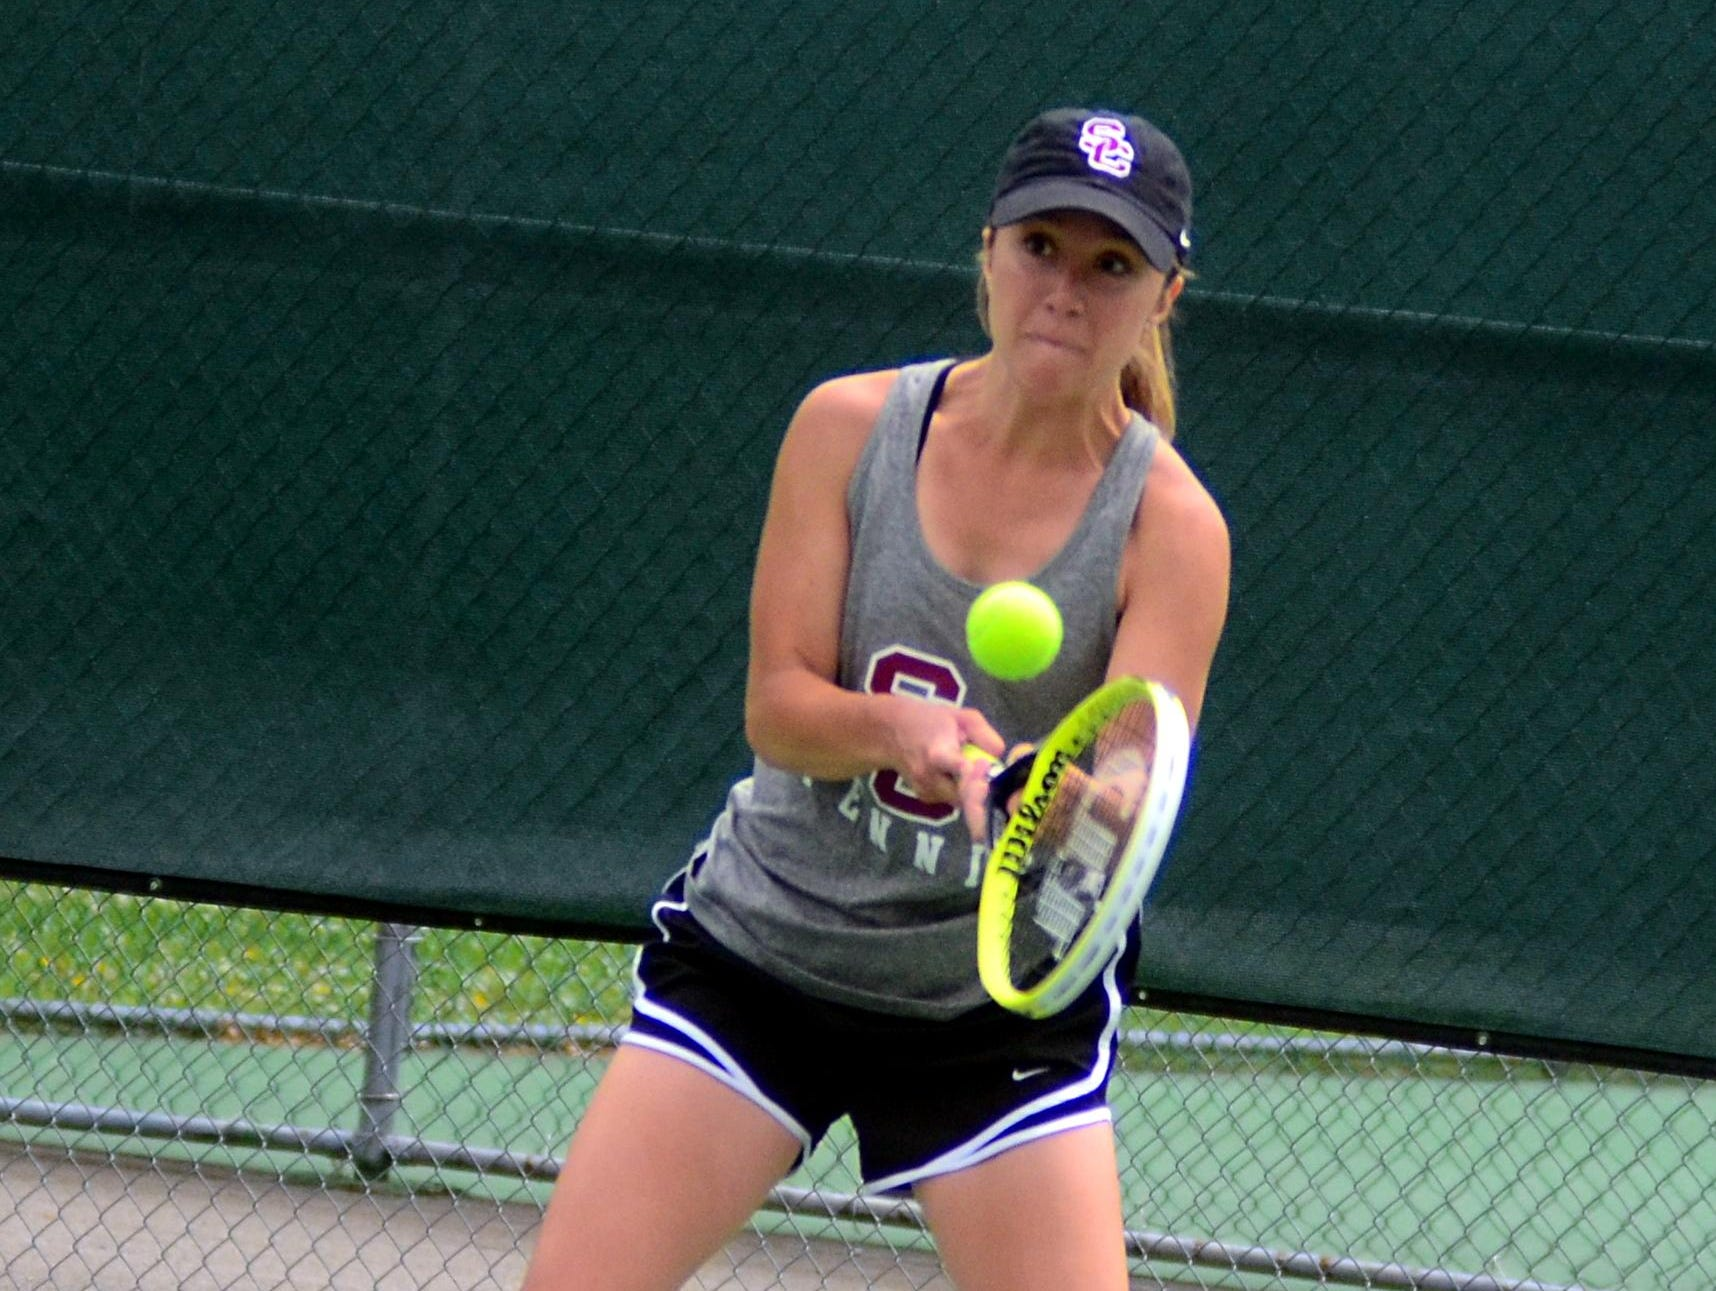 Station Camp High senior Rachel Crosslin advanced to the singles quarterfinals of the District 9-AAA Individual Tennis Tournament before suffering a straight-set loss to Mt. Juliet's Elizabeth Stanley.